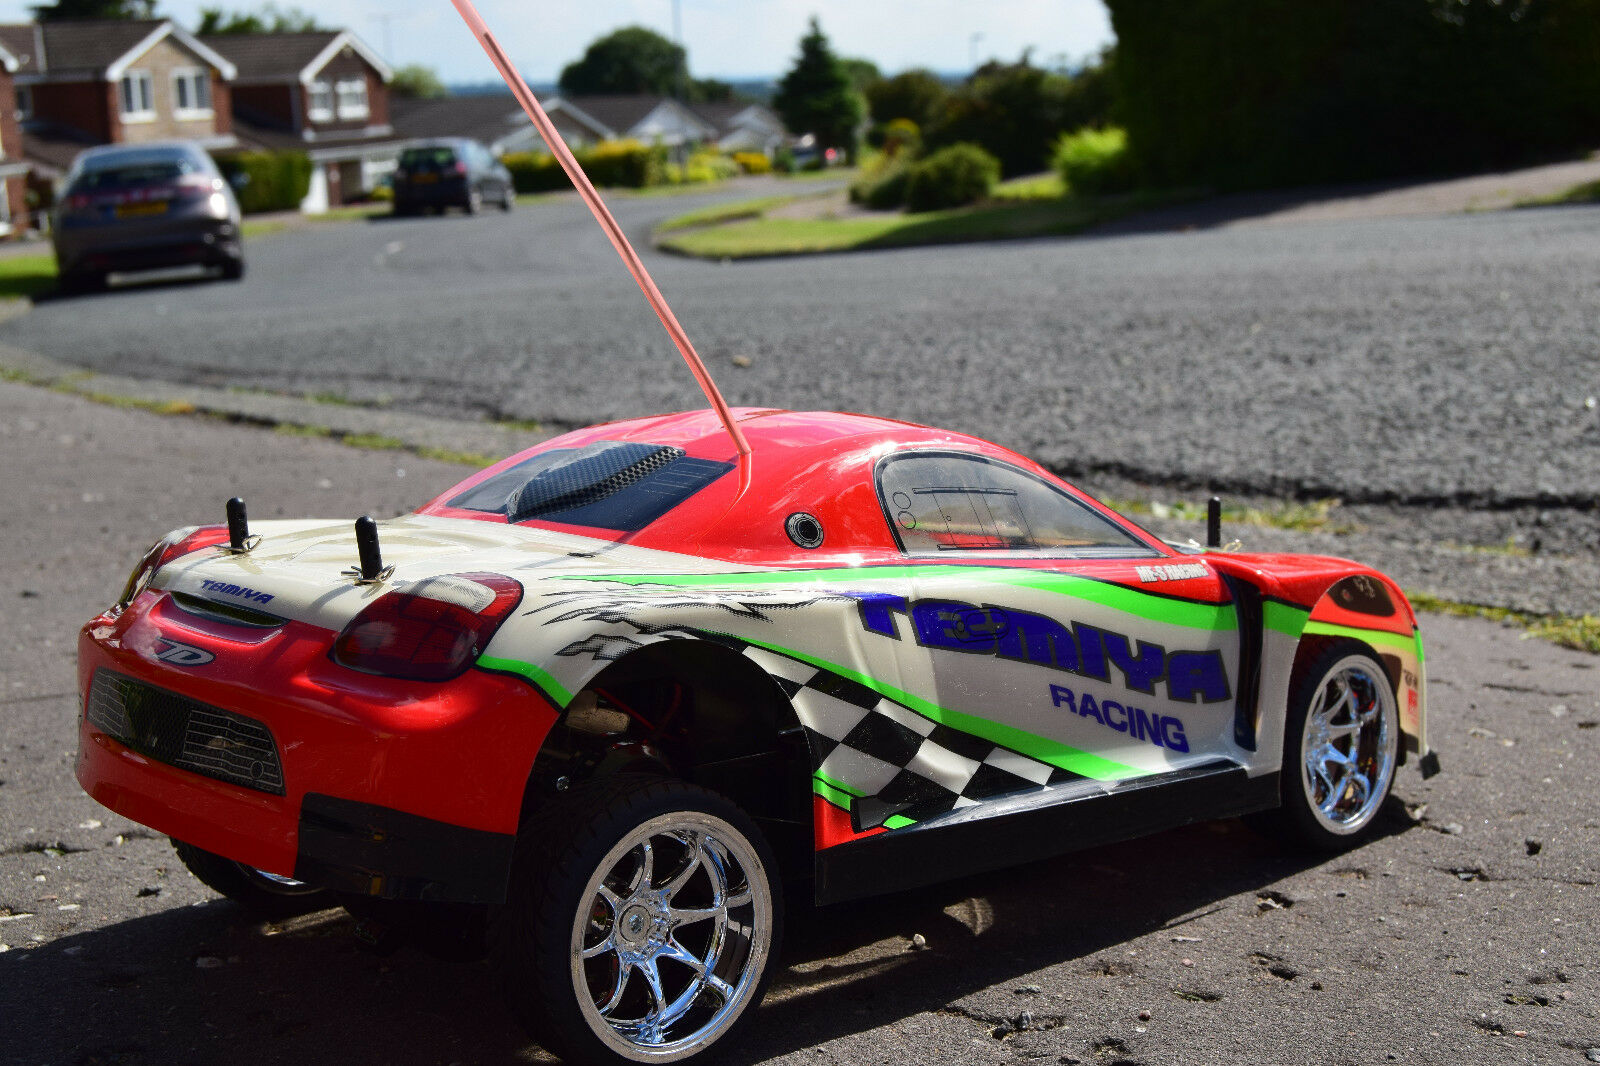 TOYOTA MR2 RECHARGEABLE RADIO REMOTE CONTROL CAR 1 10 RC CAR SPEED 20 MPH